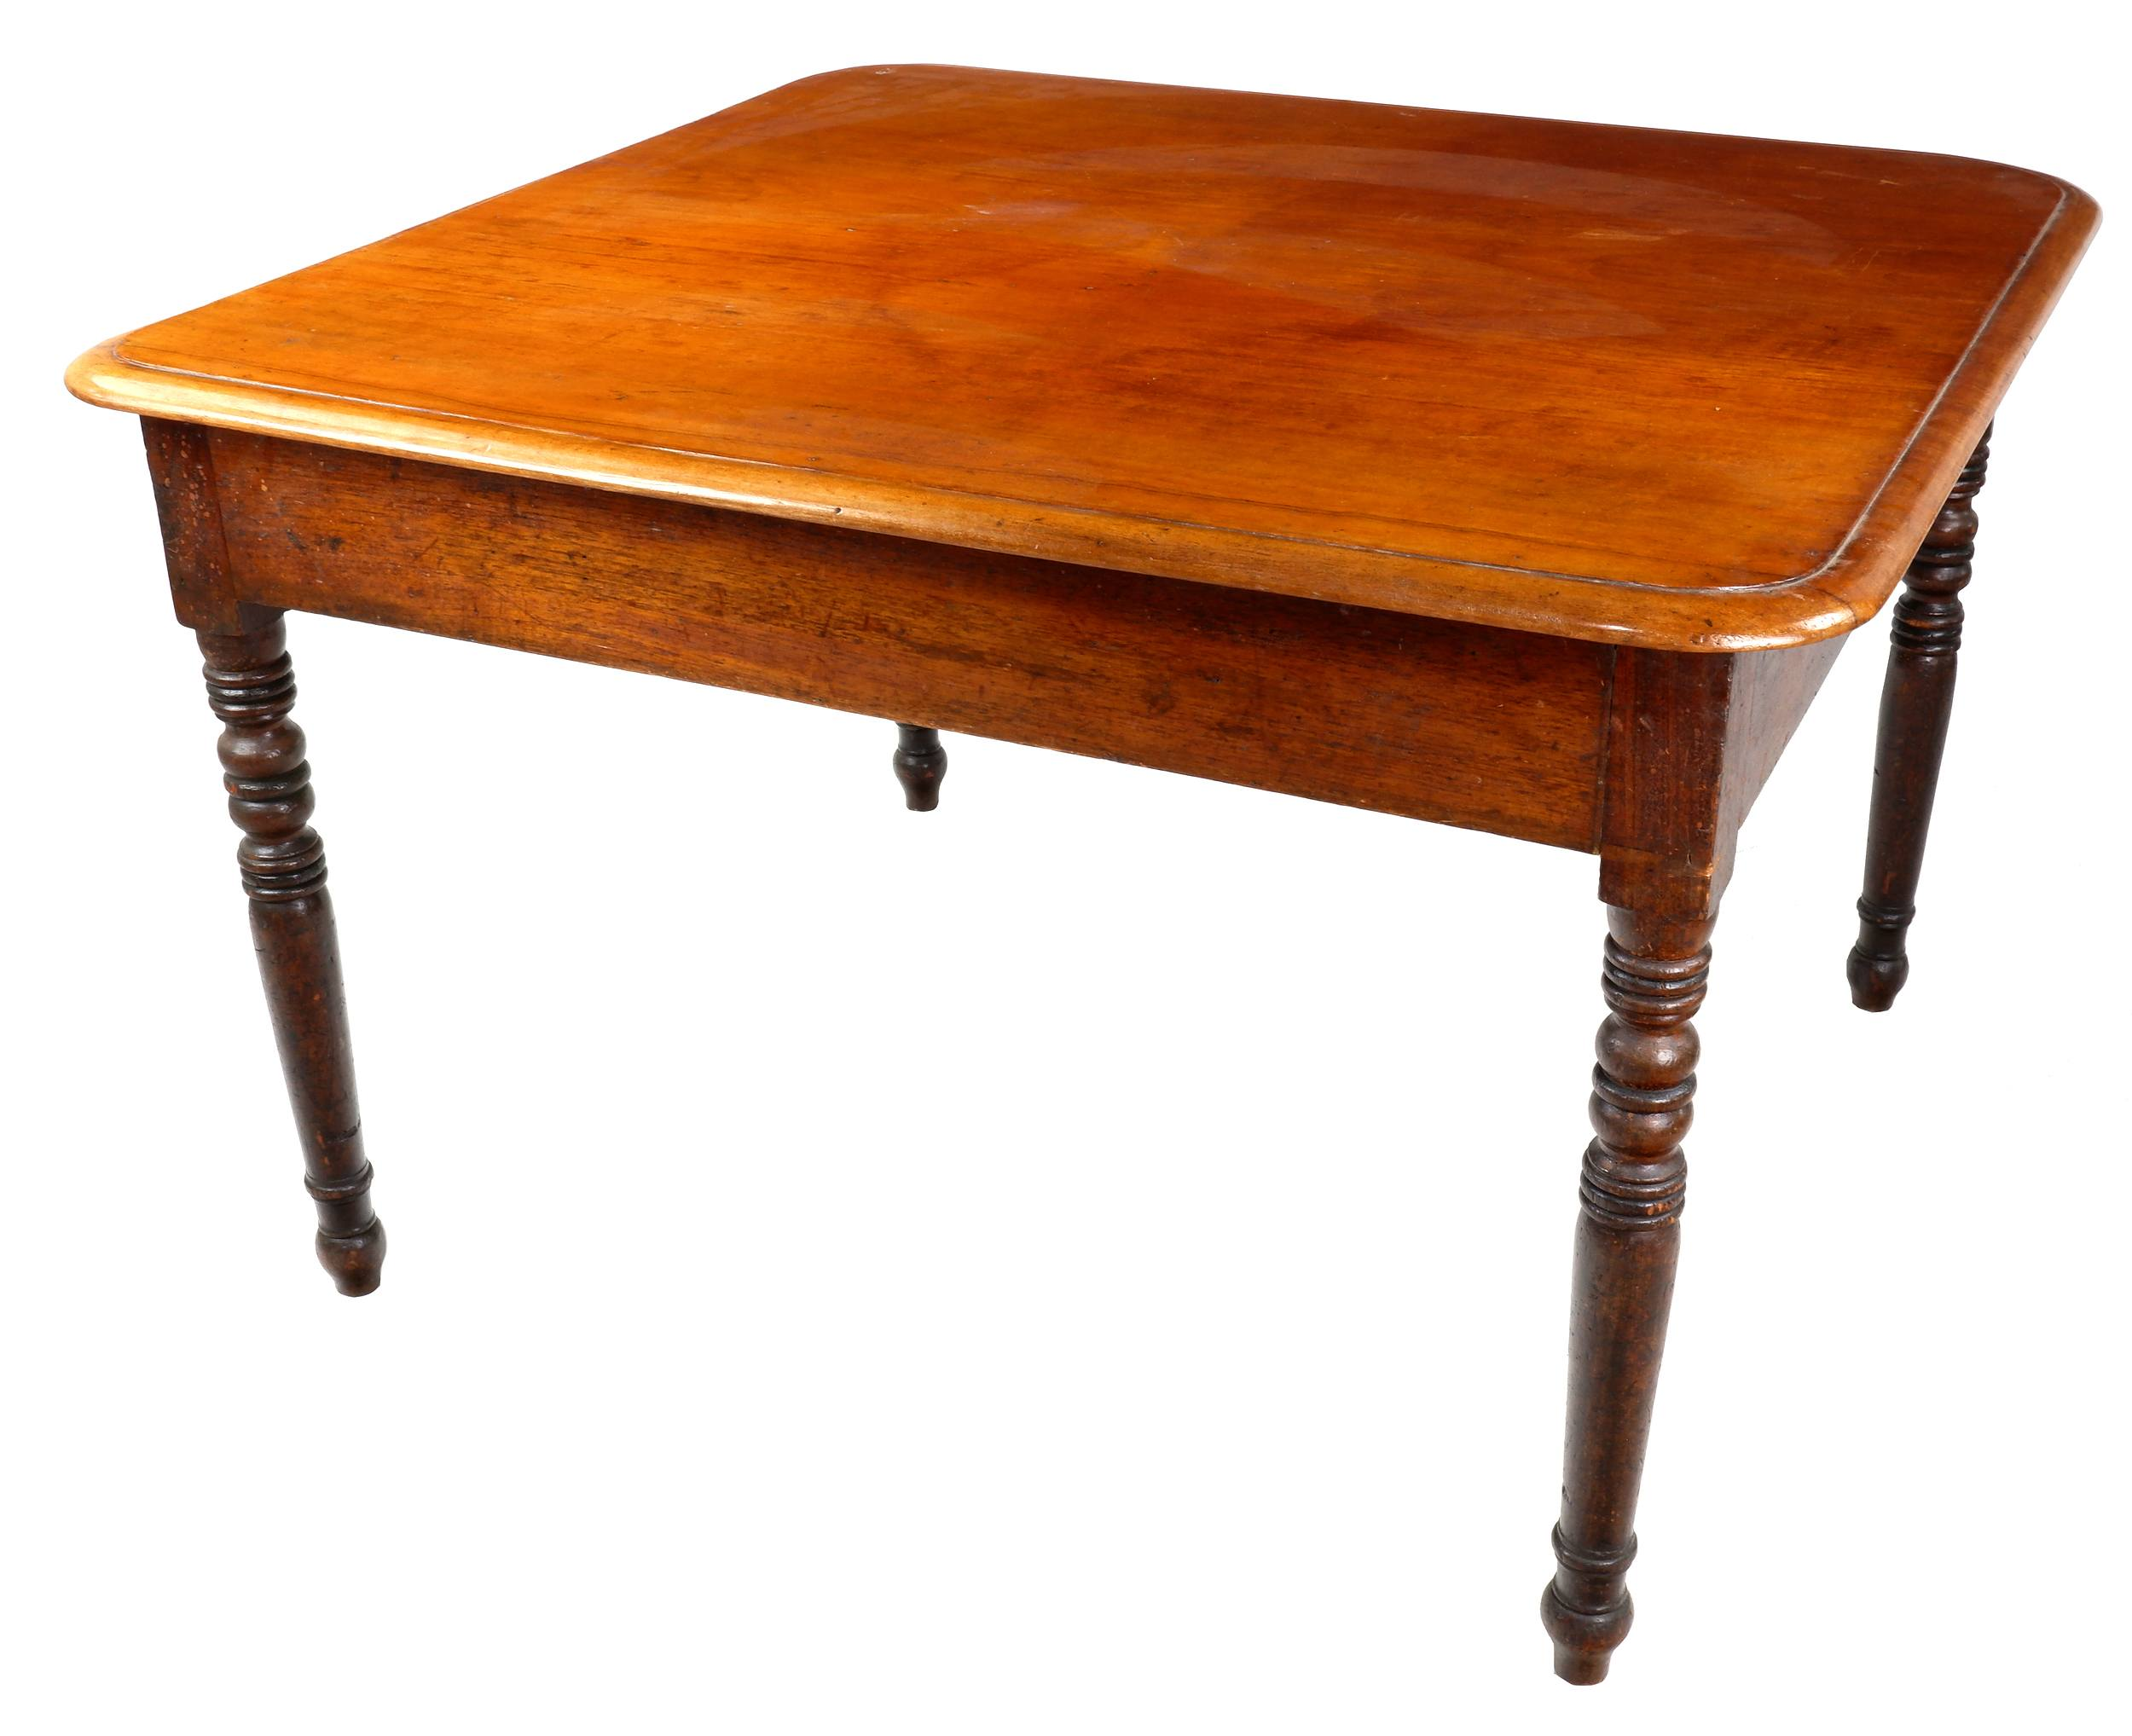 'Antique Cedar Farmhouse Table with Finely Turned Legs, Mid to Late 19th Century'